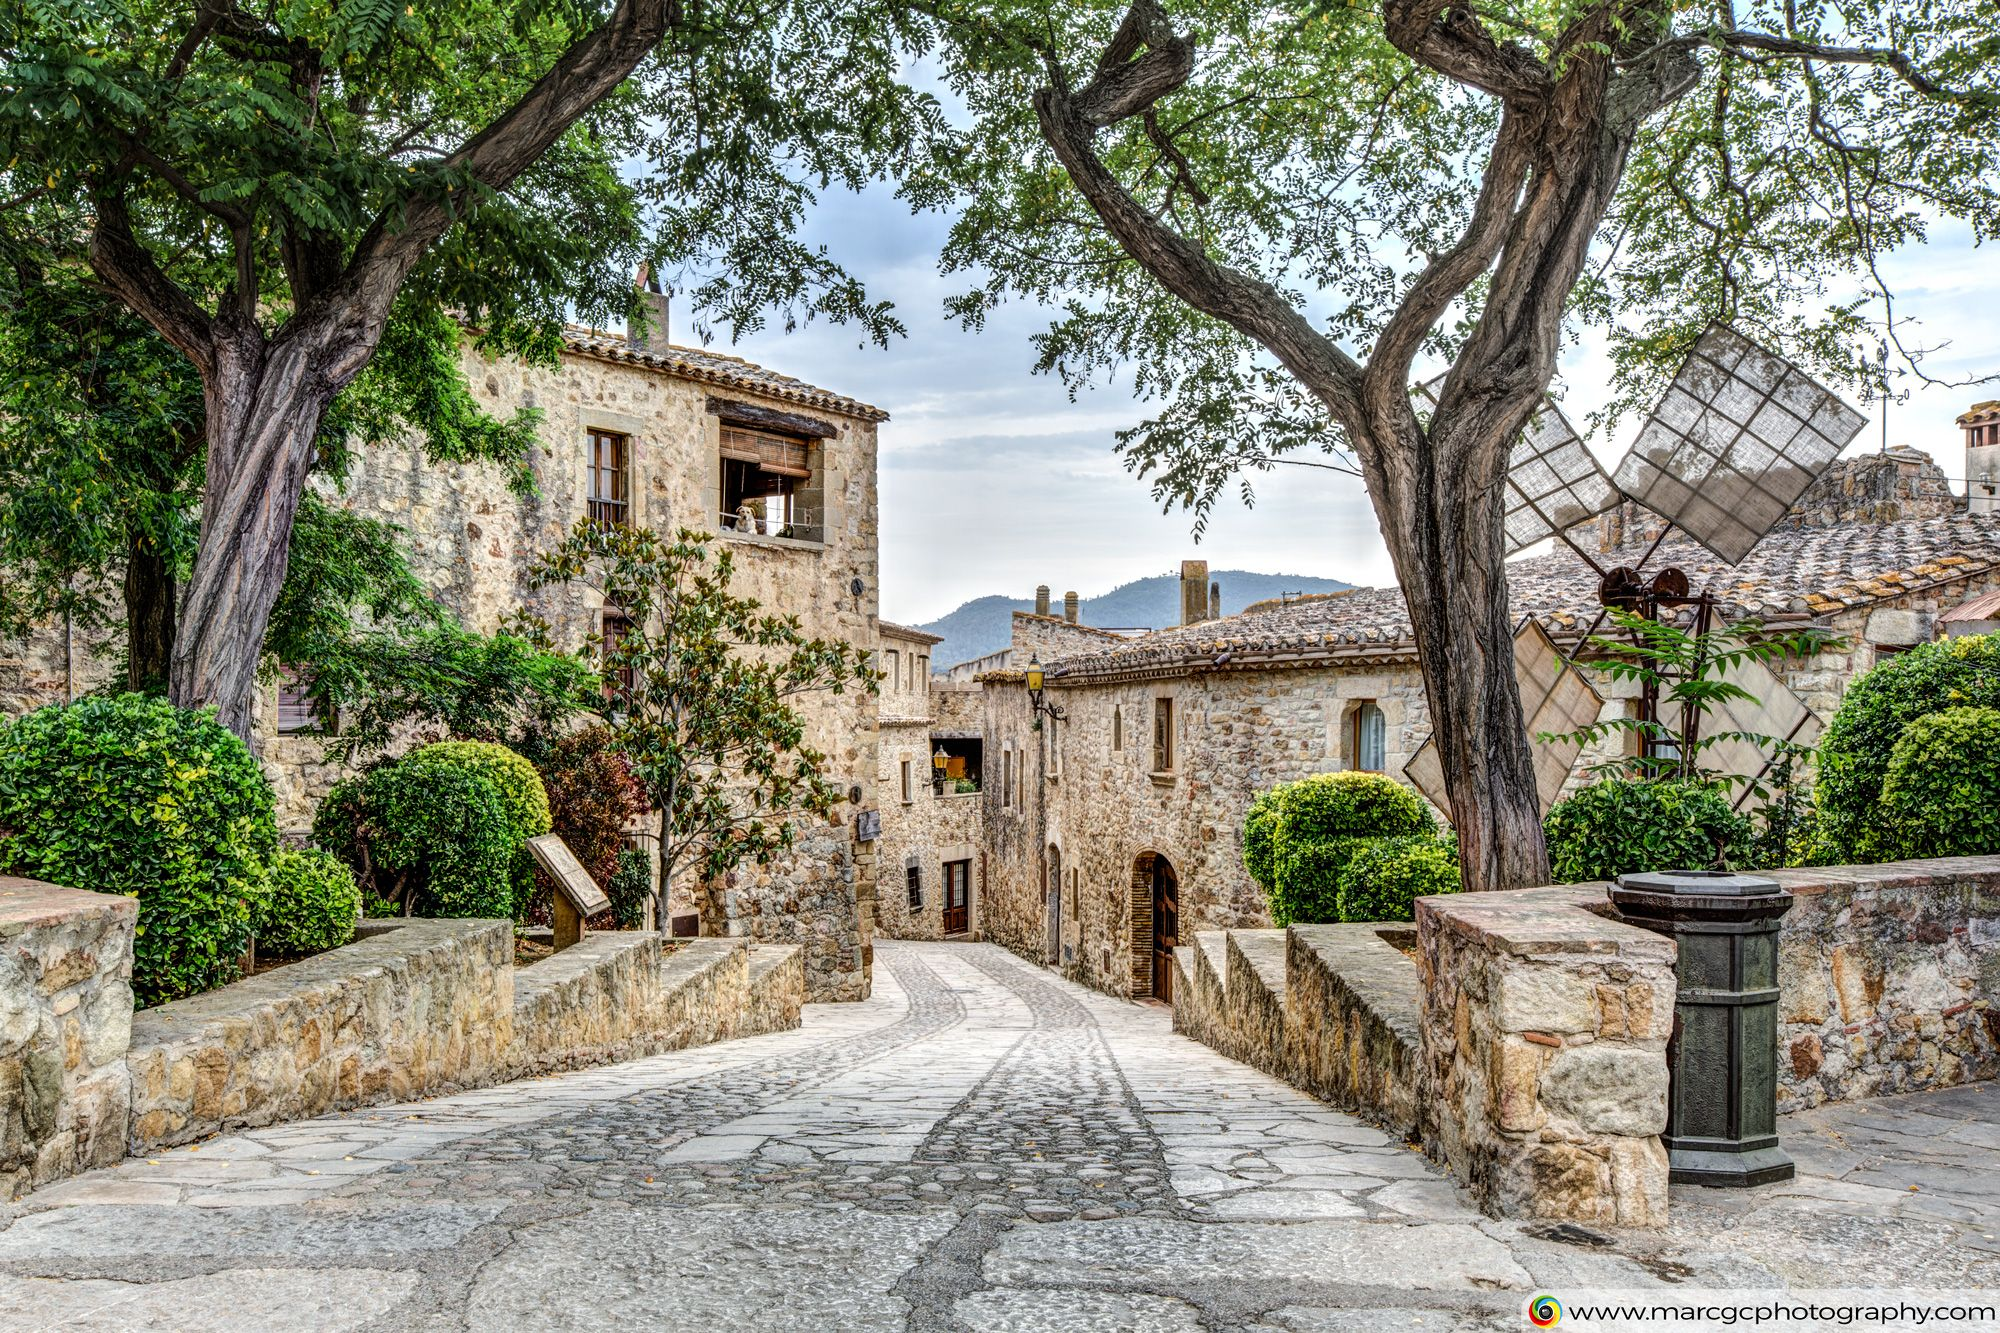 Pals, A Lovely Medieval Village (Catalonia)